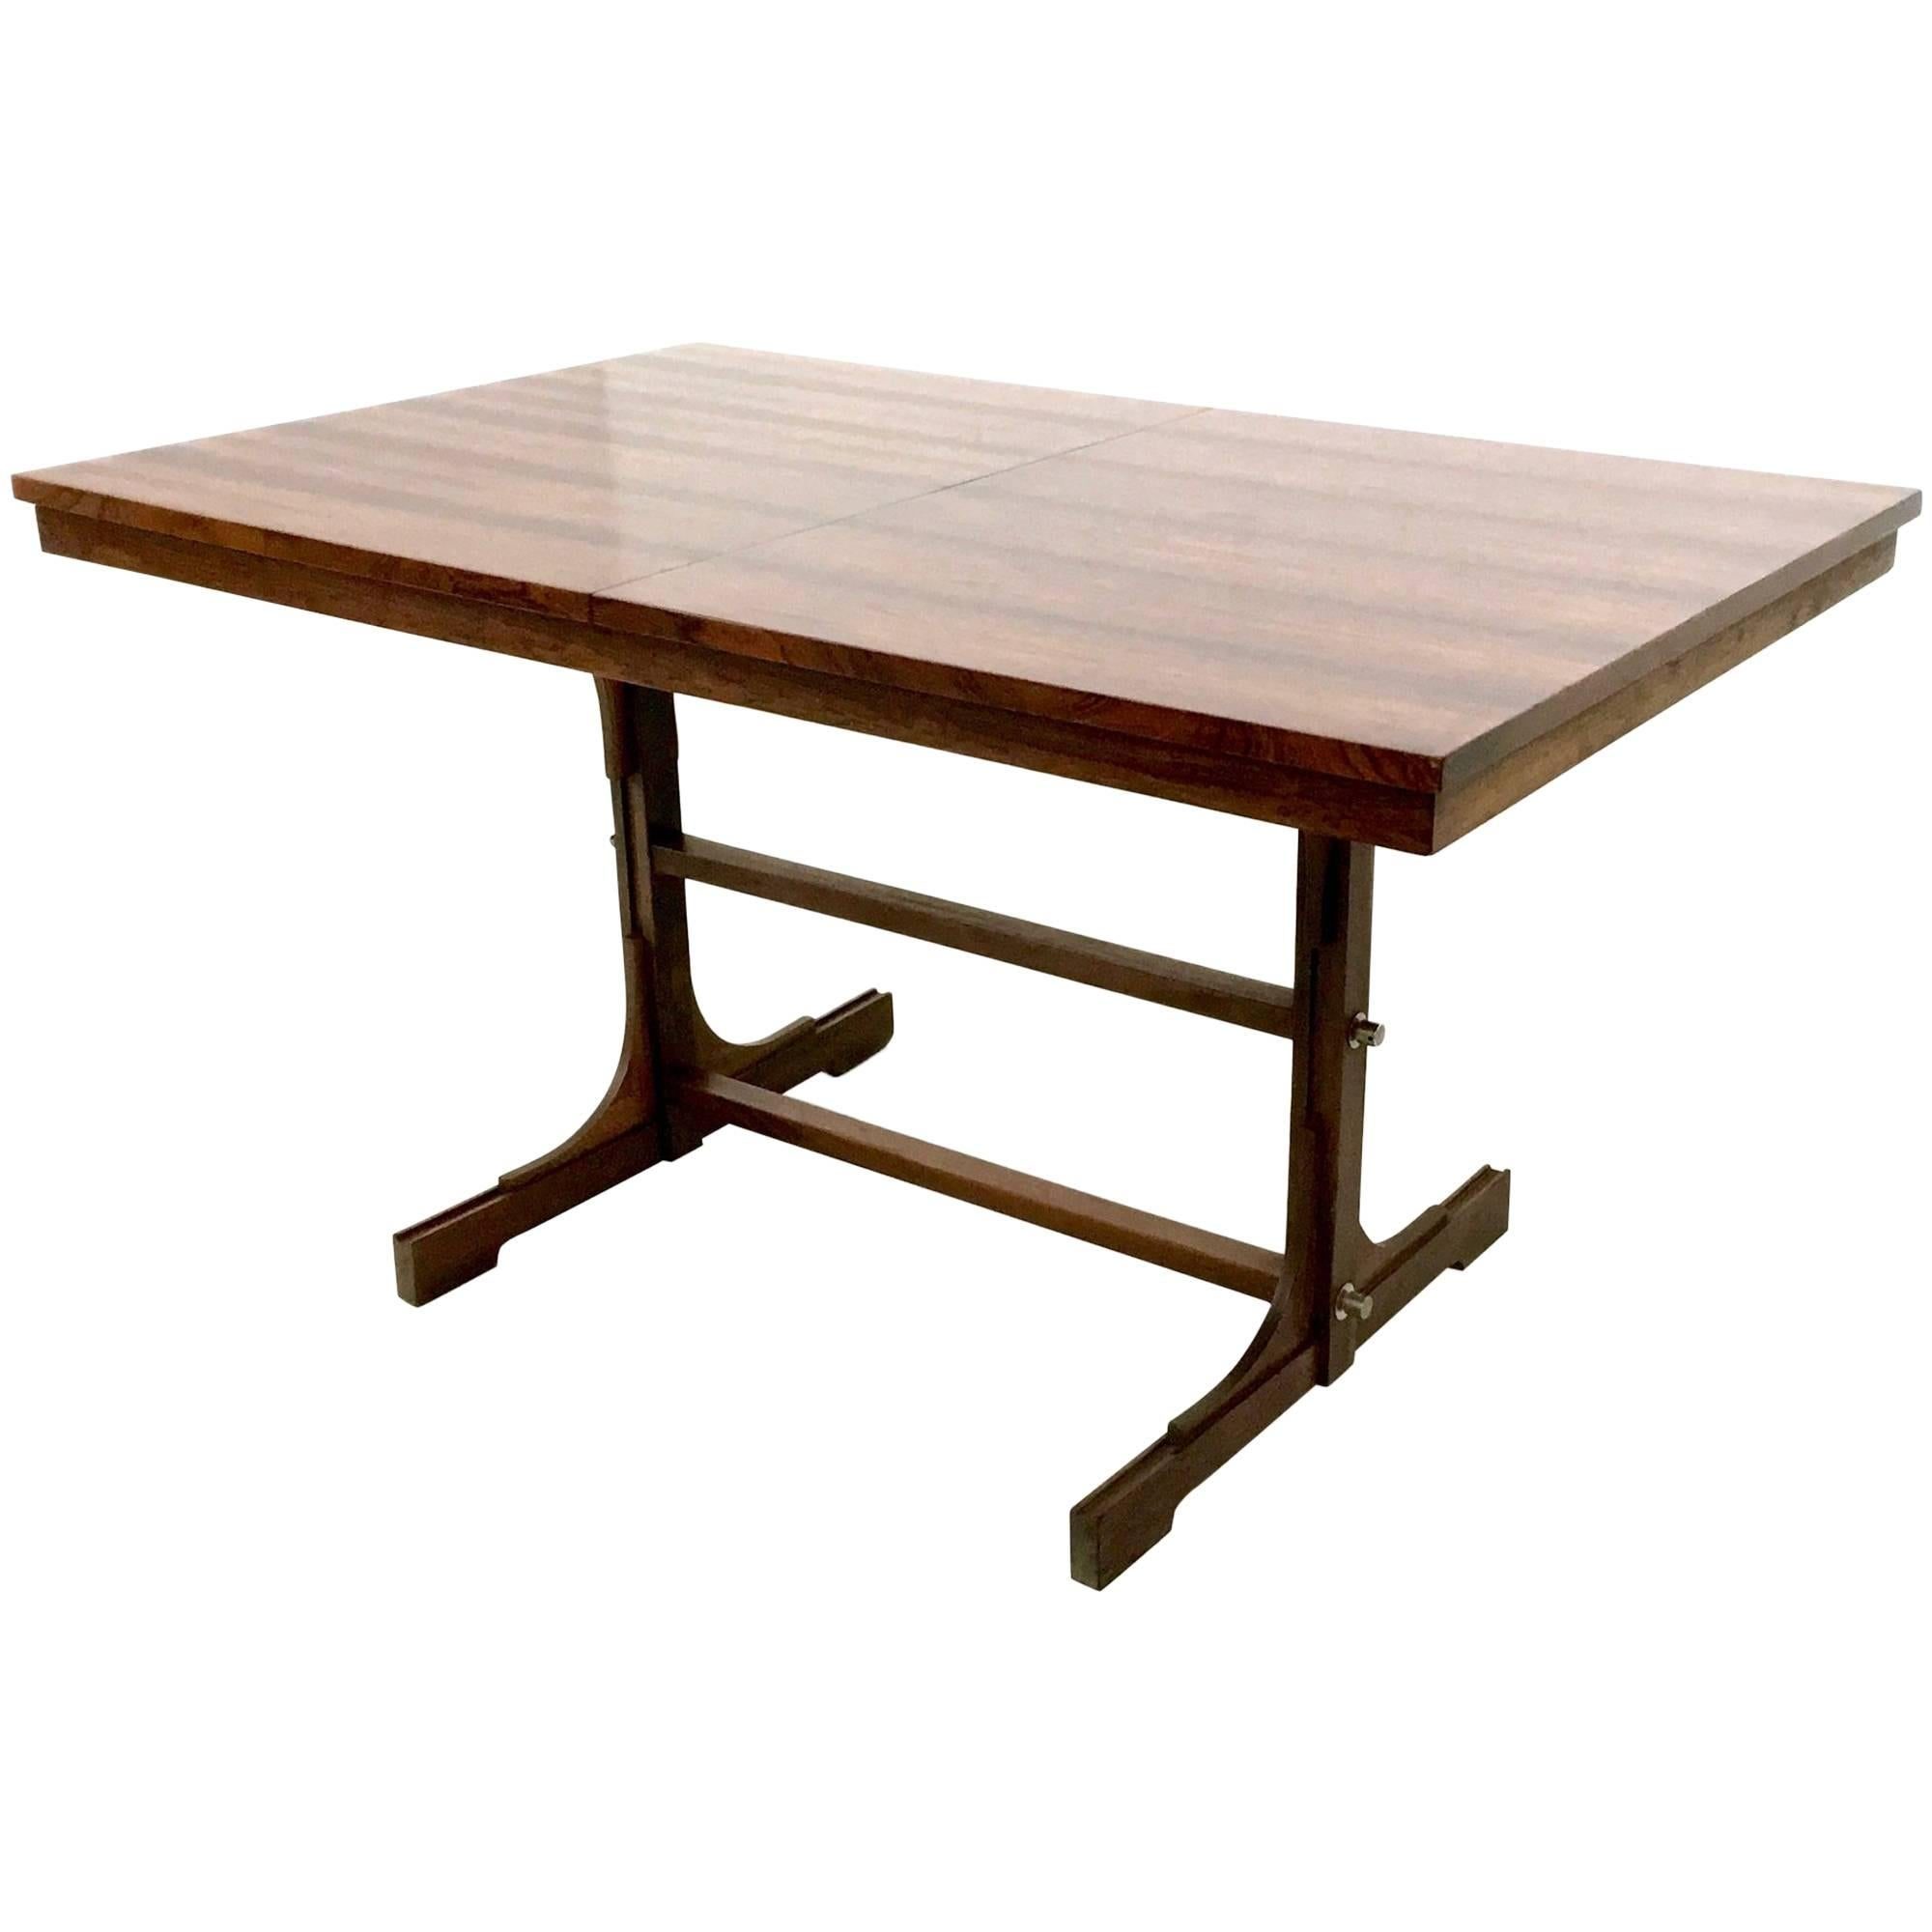 Midcentury Wooden Extendible Dining Table, Italy, 1960s